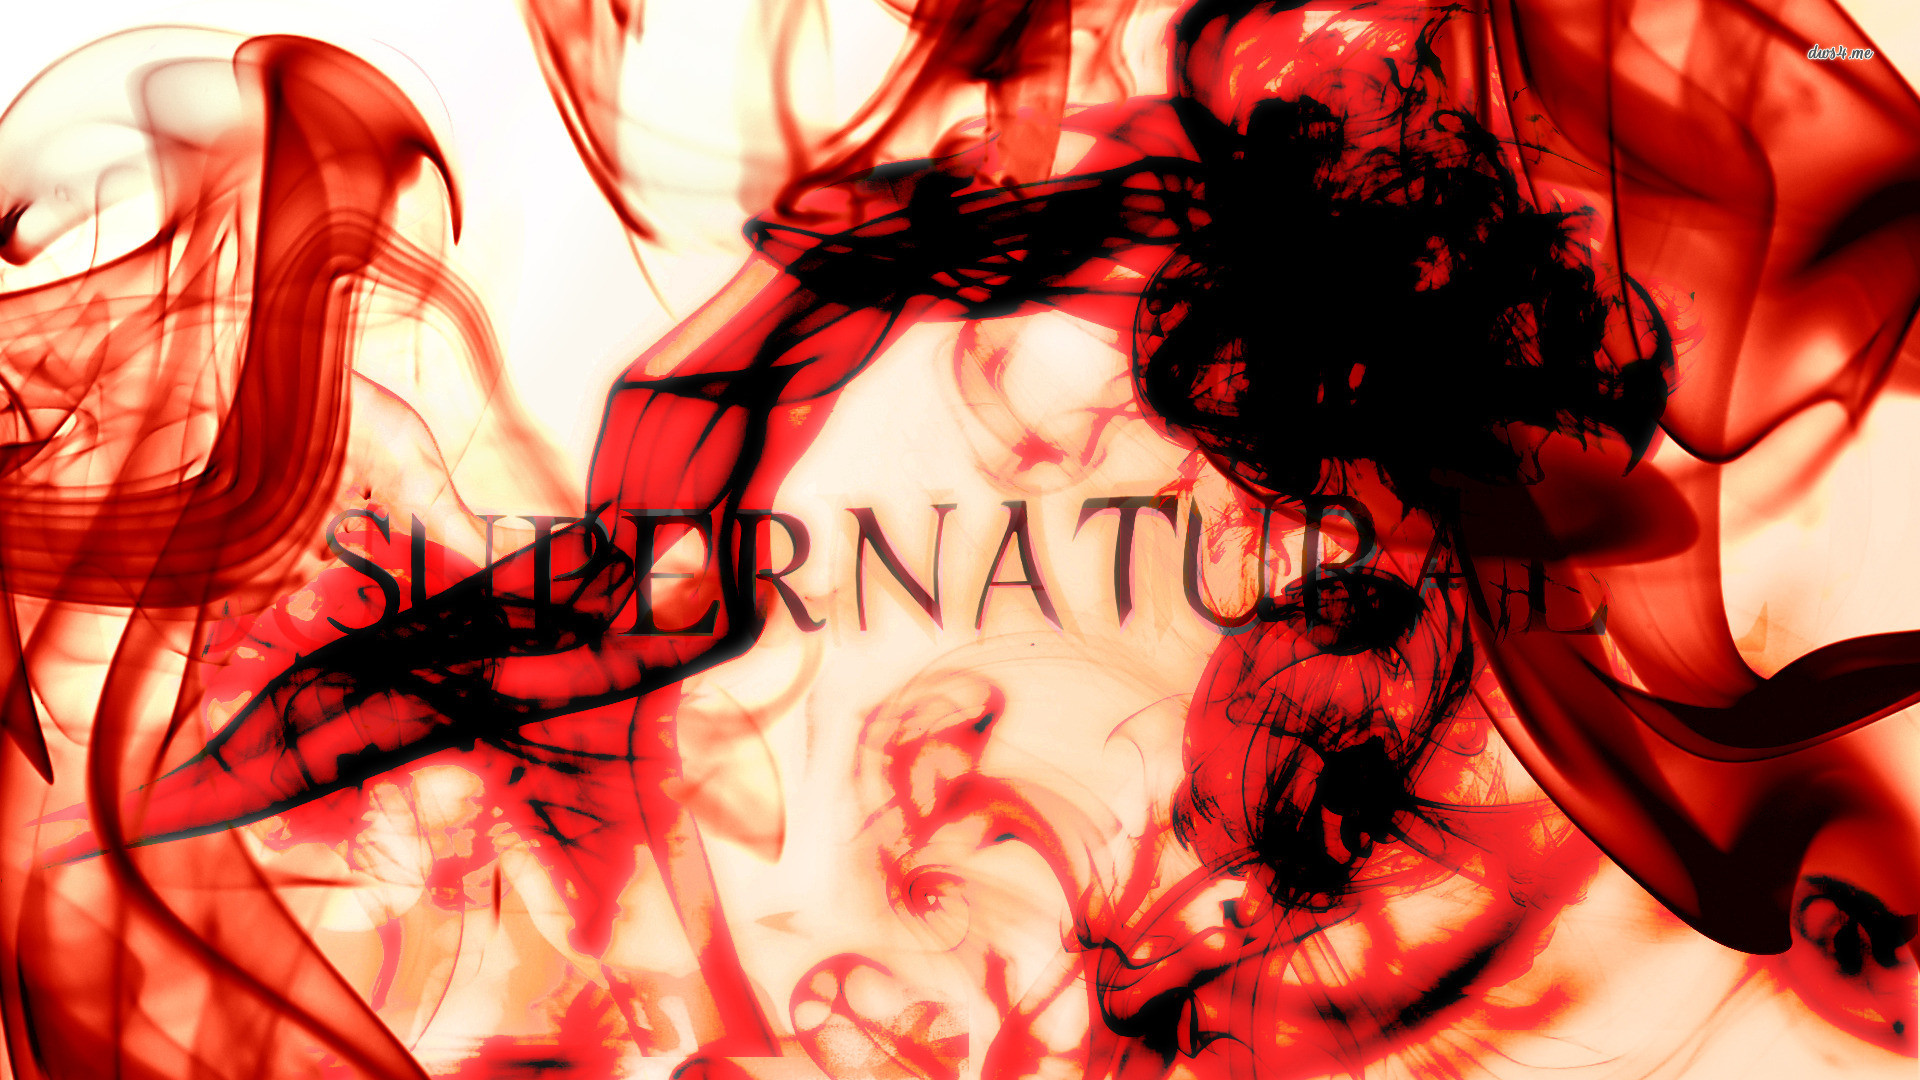 1920x1080 supernatural wallpapers red. Â«Â«